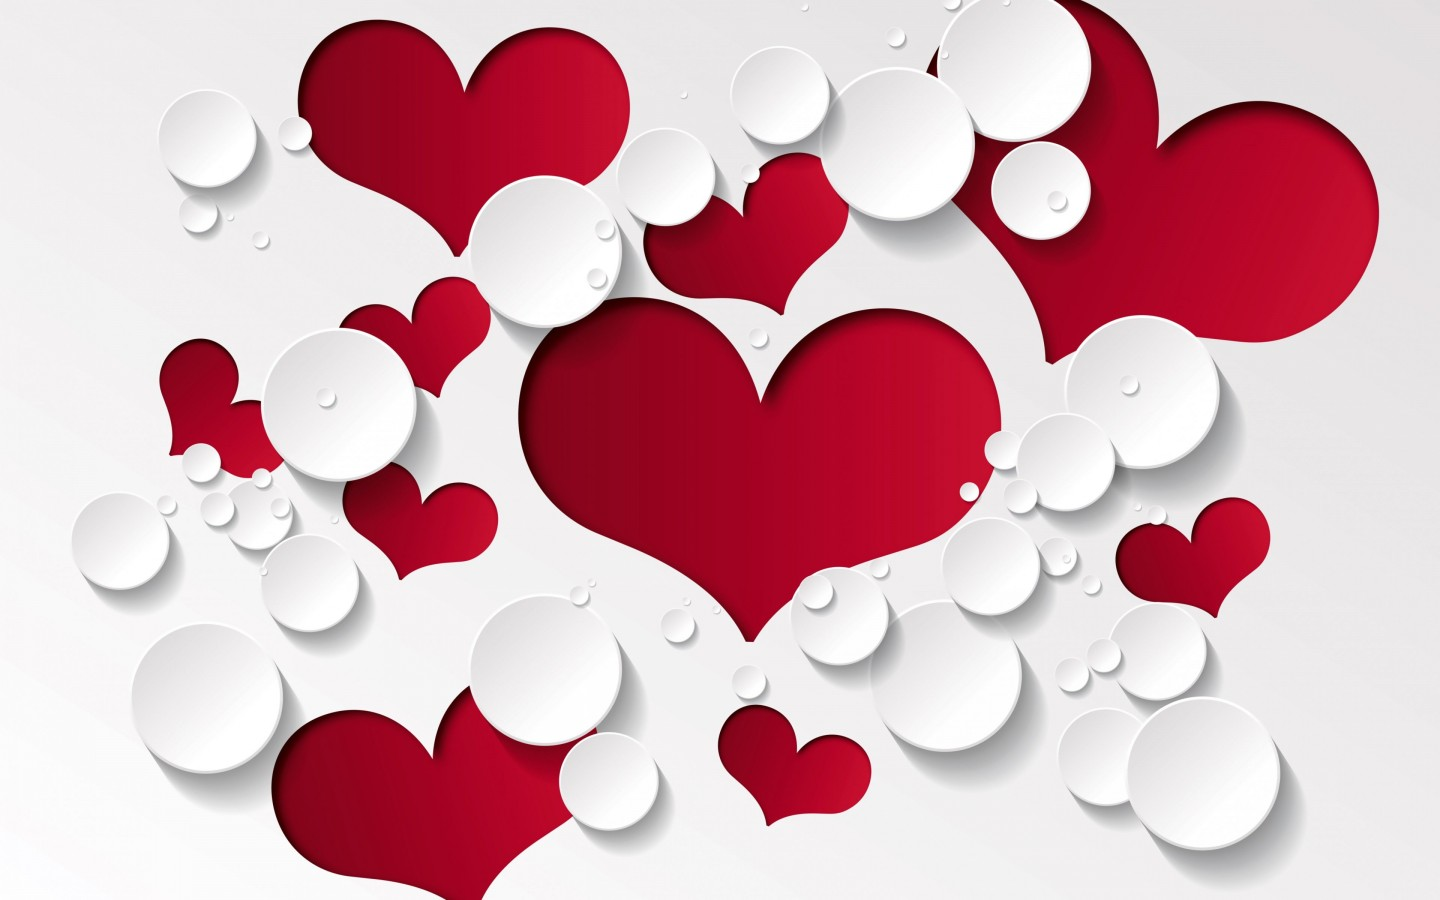 Love Heart Shaped Pattern Wallpaper for Desktop 1440x900